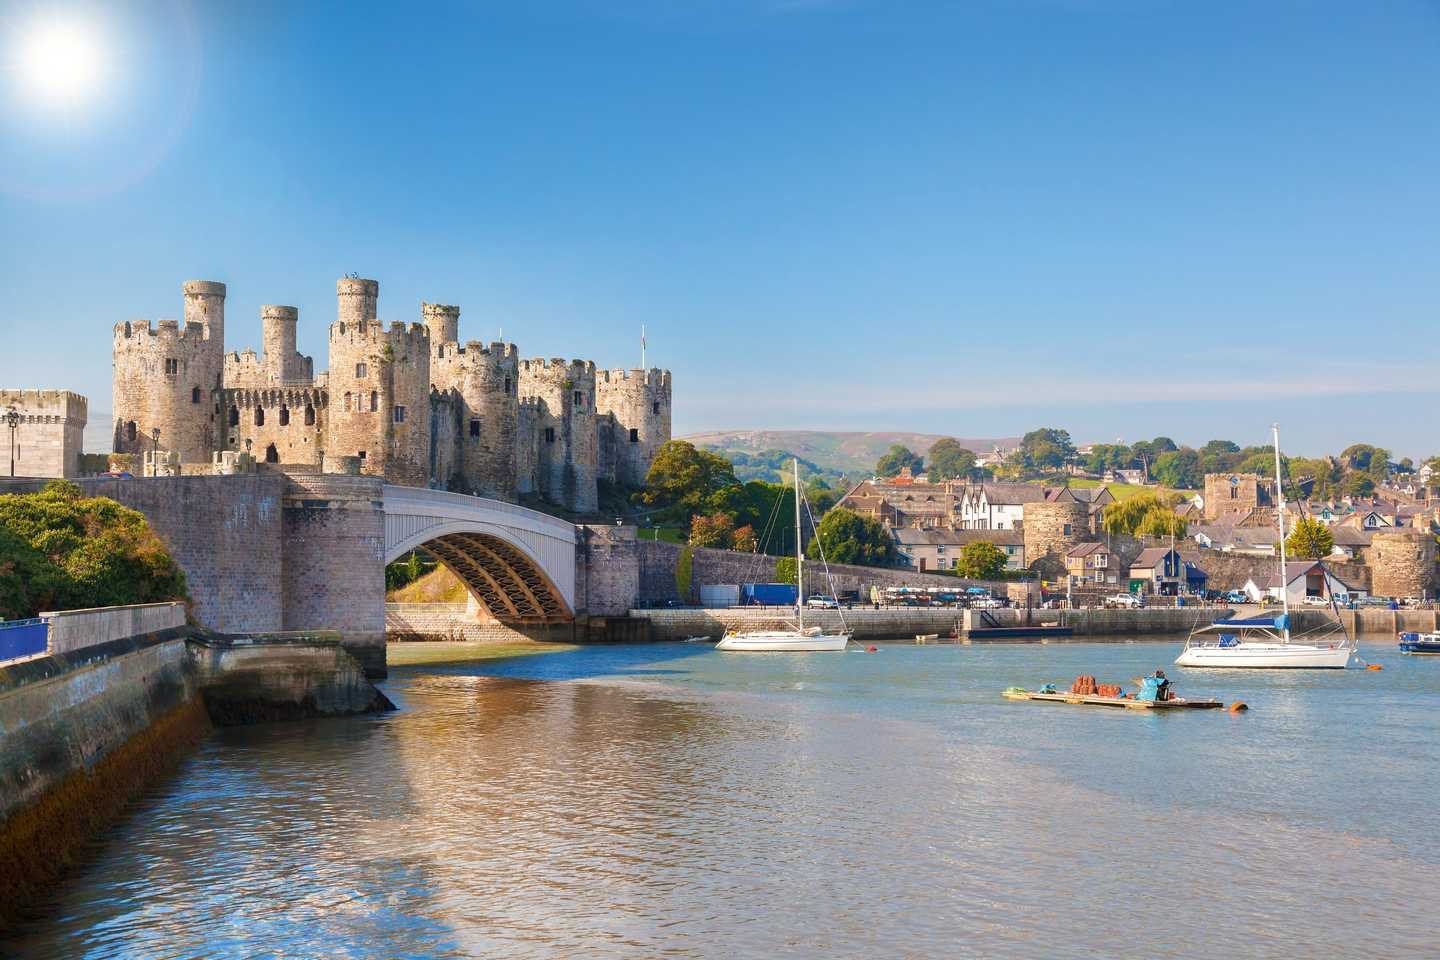 Conwy Castle overlooking the river